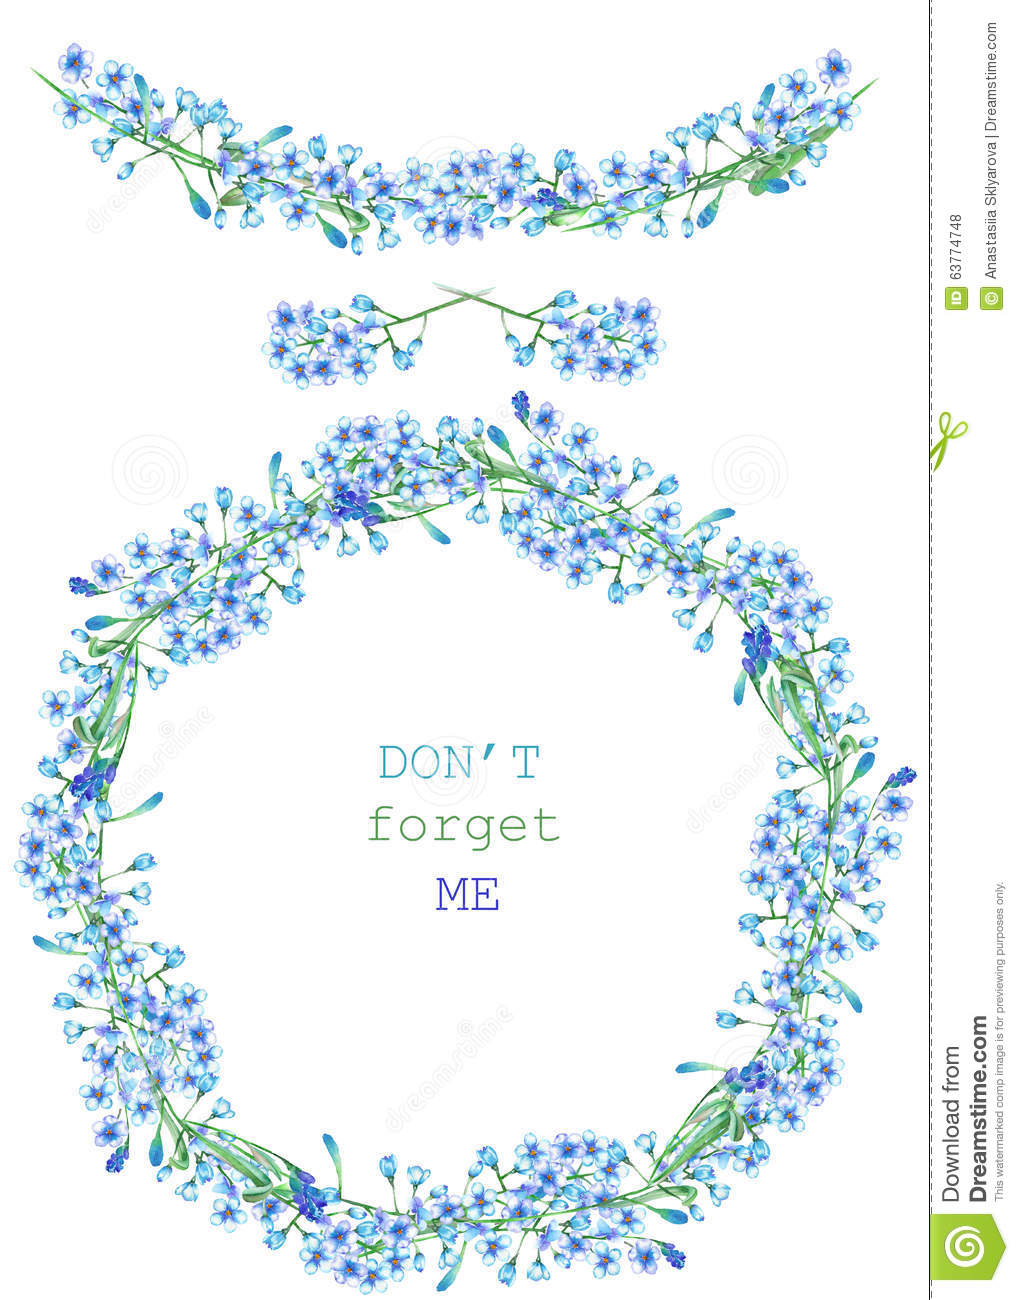 Frame border garland and wreath of the blue flowers of forget me frame border garland and wreath of the blue flowers of forget me not myosotis painted in a watercolor on a white background g izmirmasajfo Gallery